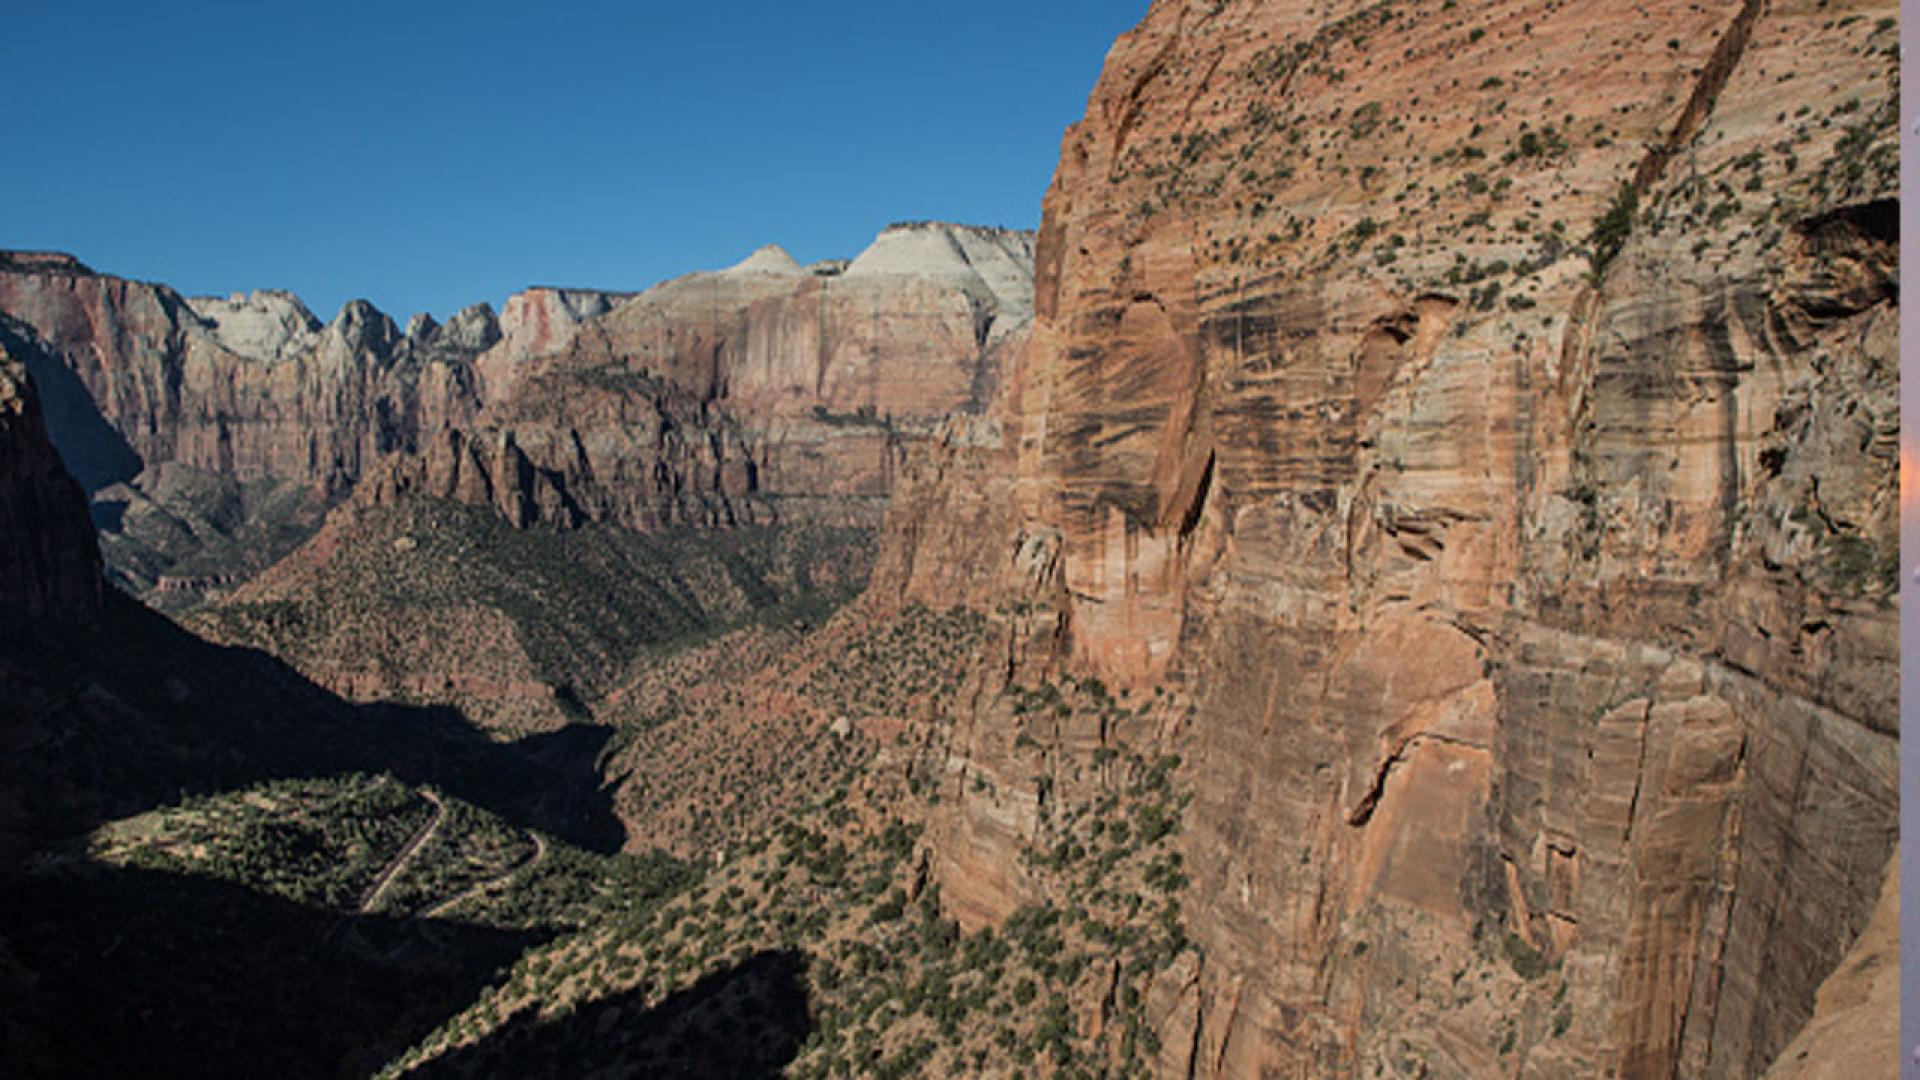 An photo of Zion National Park.